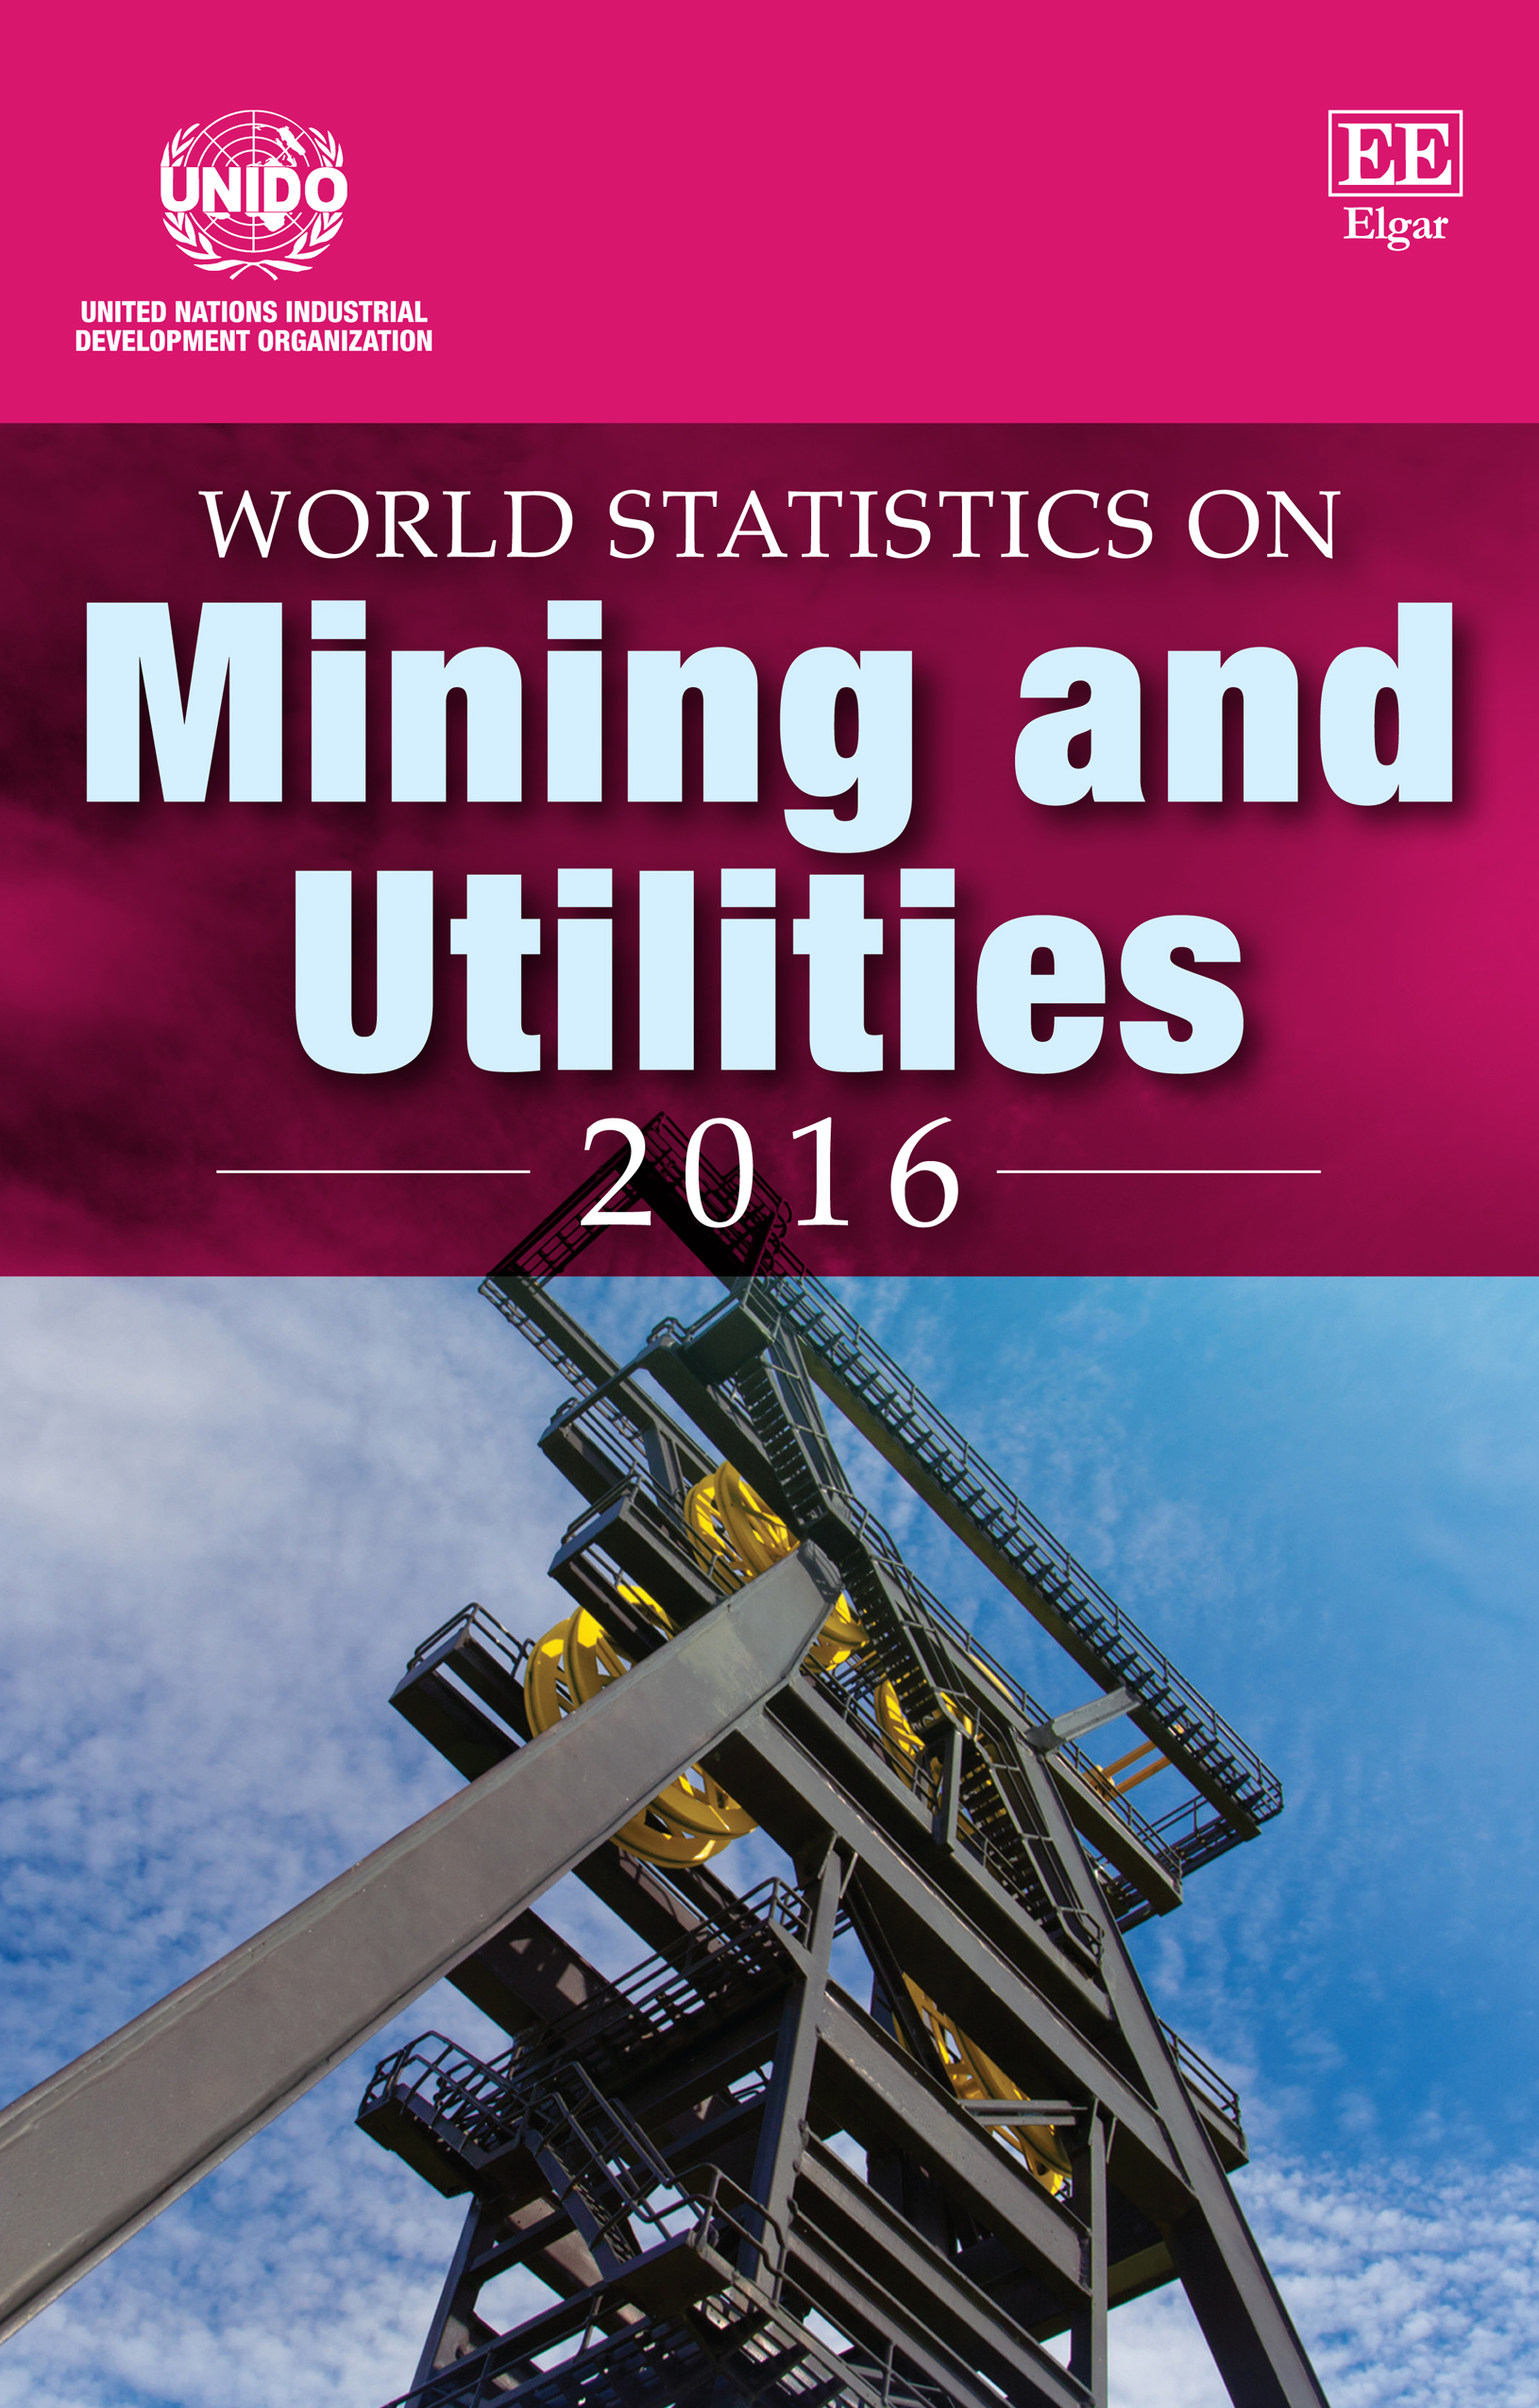 Download Ebook World Statistics on Mining and Utilities 2016 by UNIDO Pdf